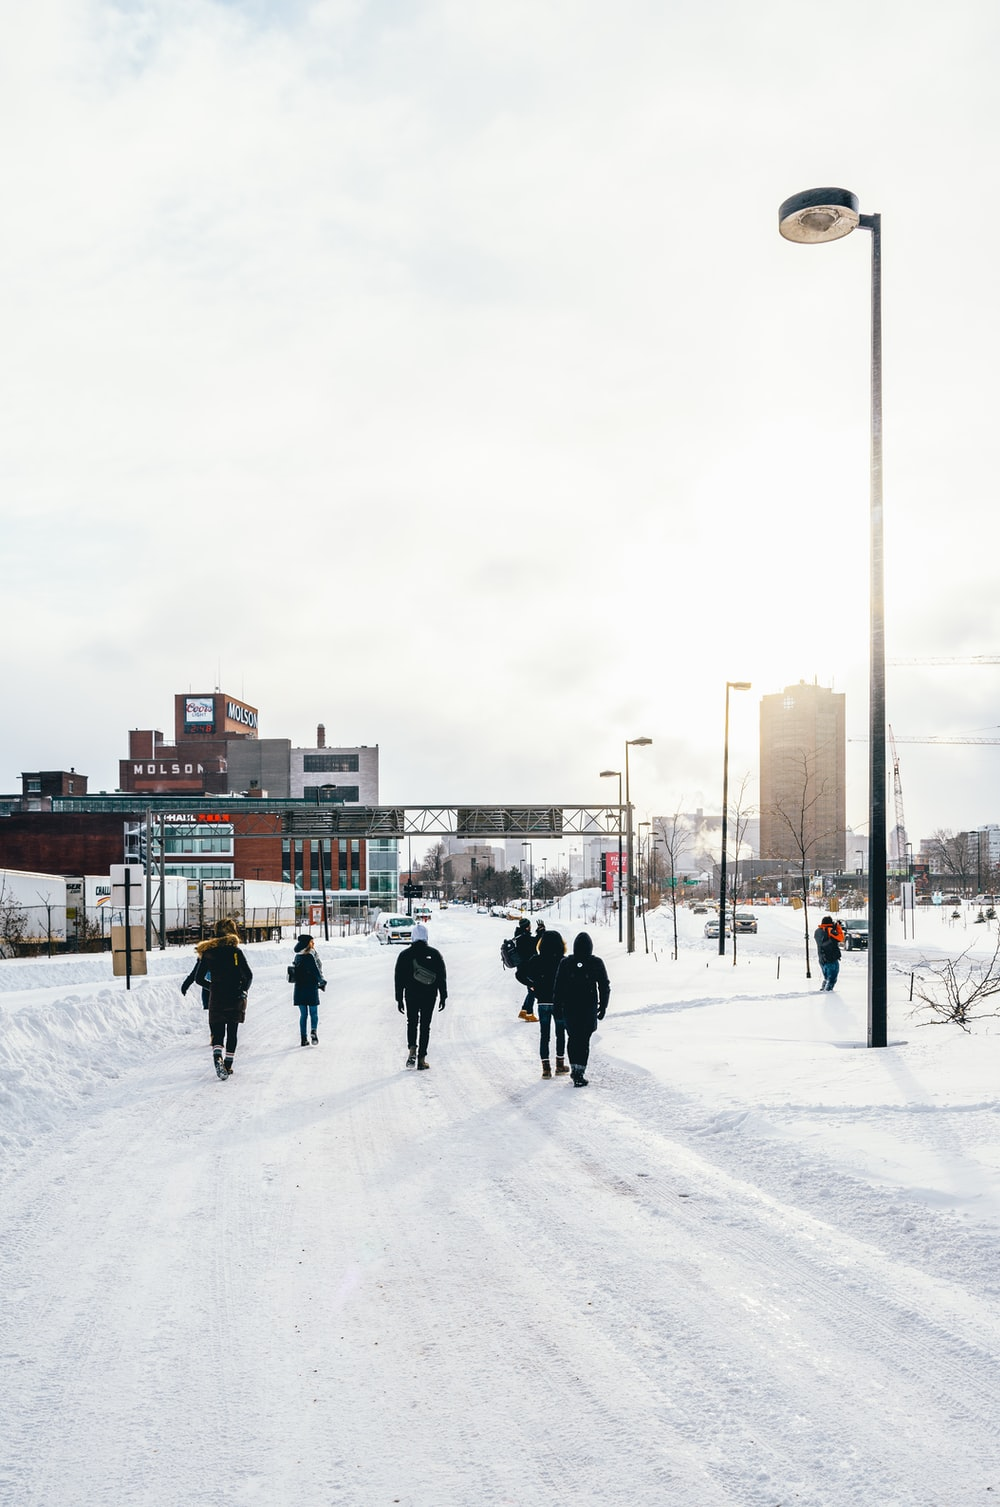 people walking on snow covered road during day time